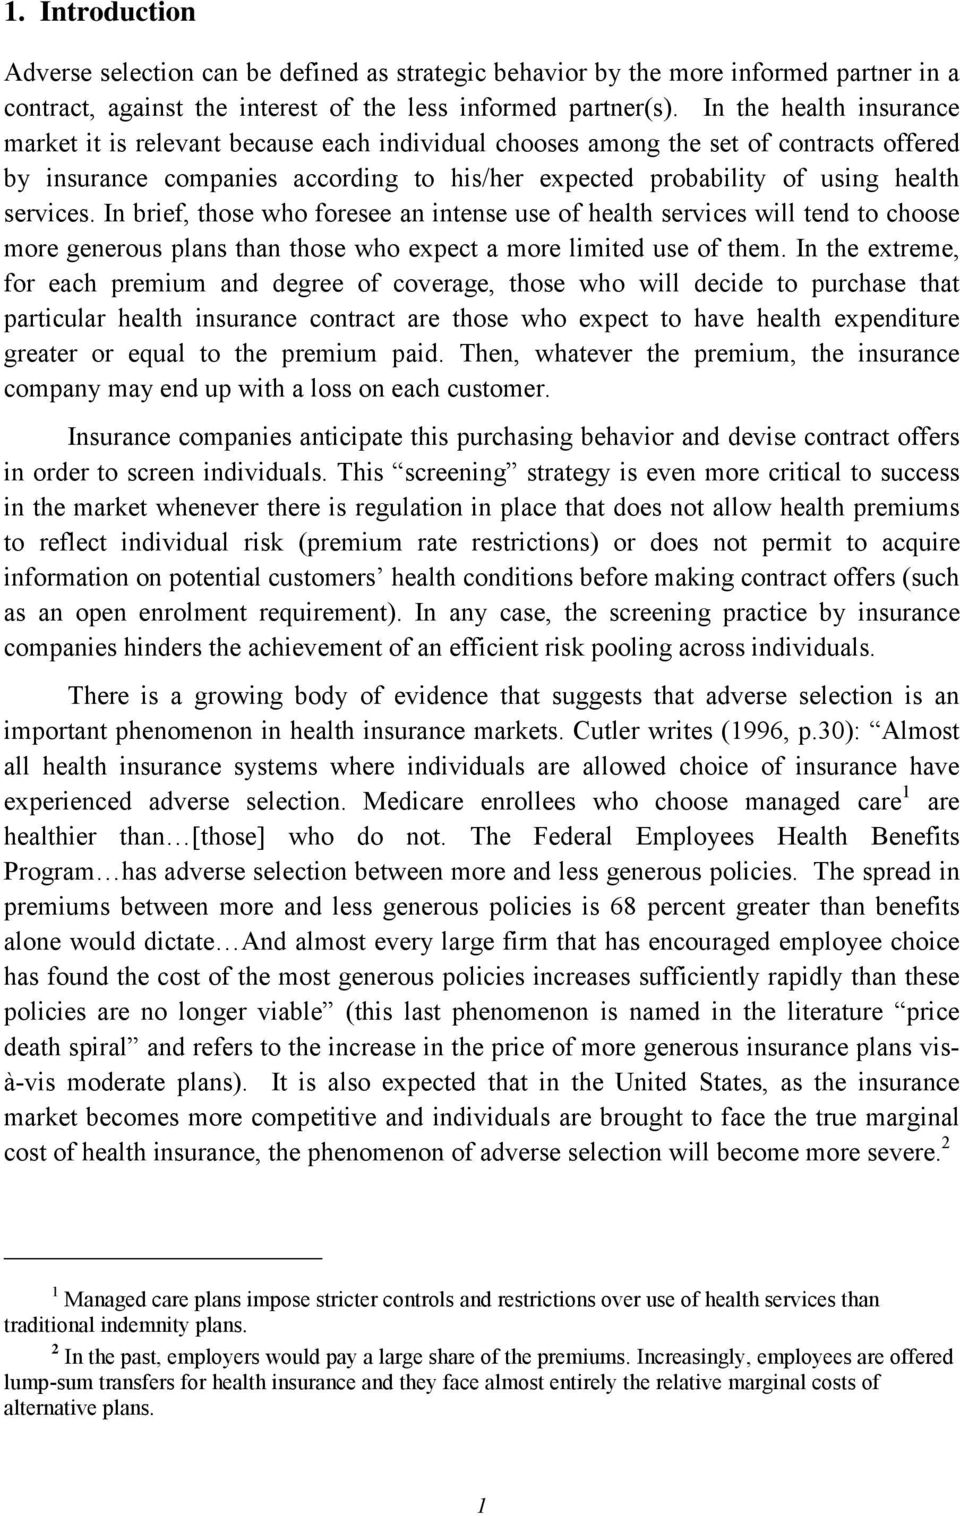 services. In brief, those who foresee an intense use of health services will tend to choose more generous plans than those who expect a more limited use of them.